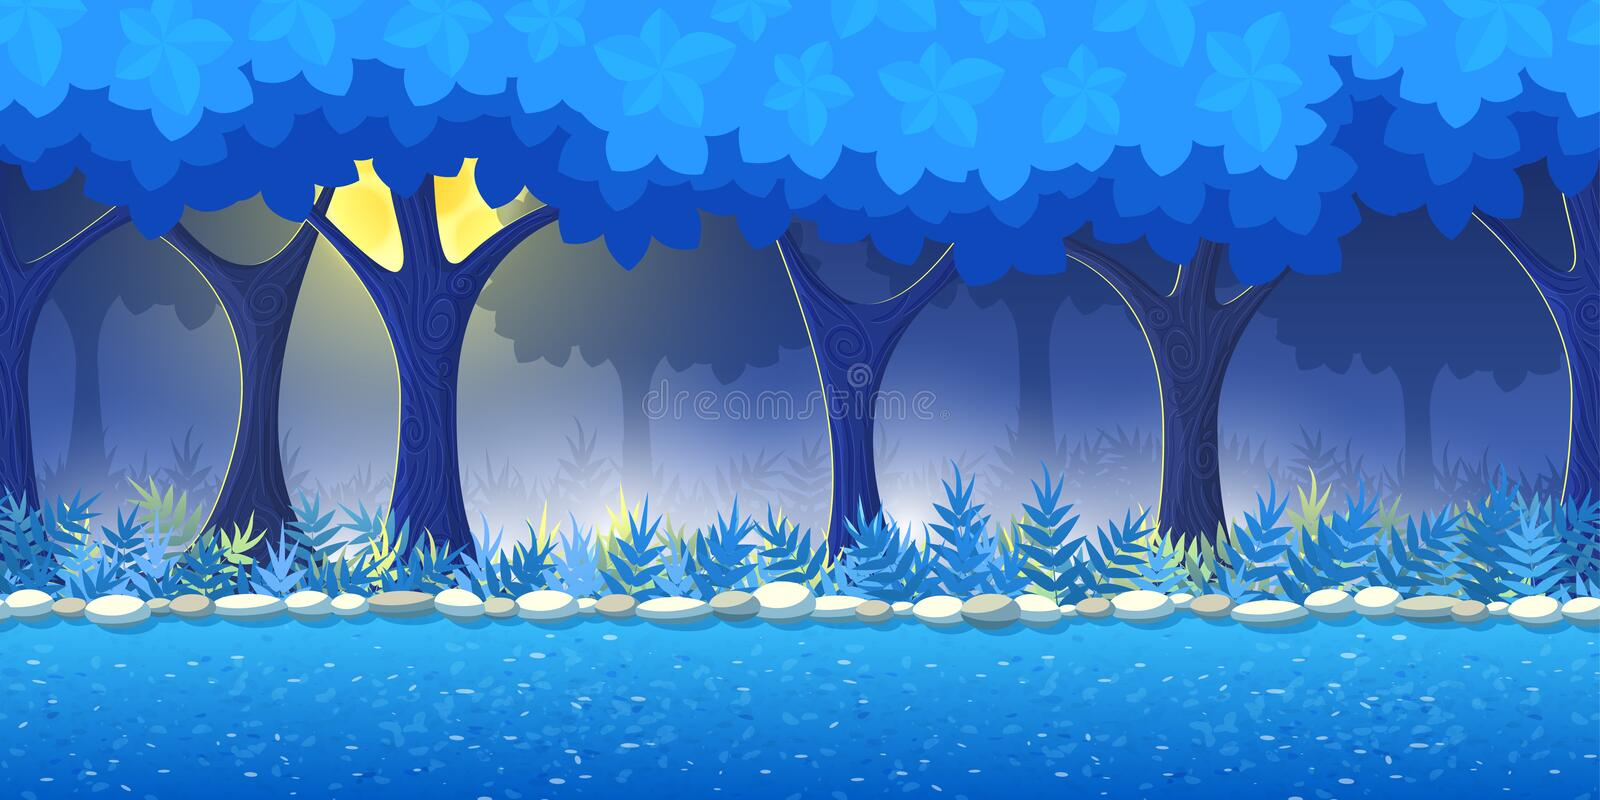 Forest Game Background royaltyfri illustrationer